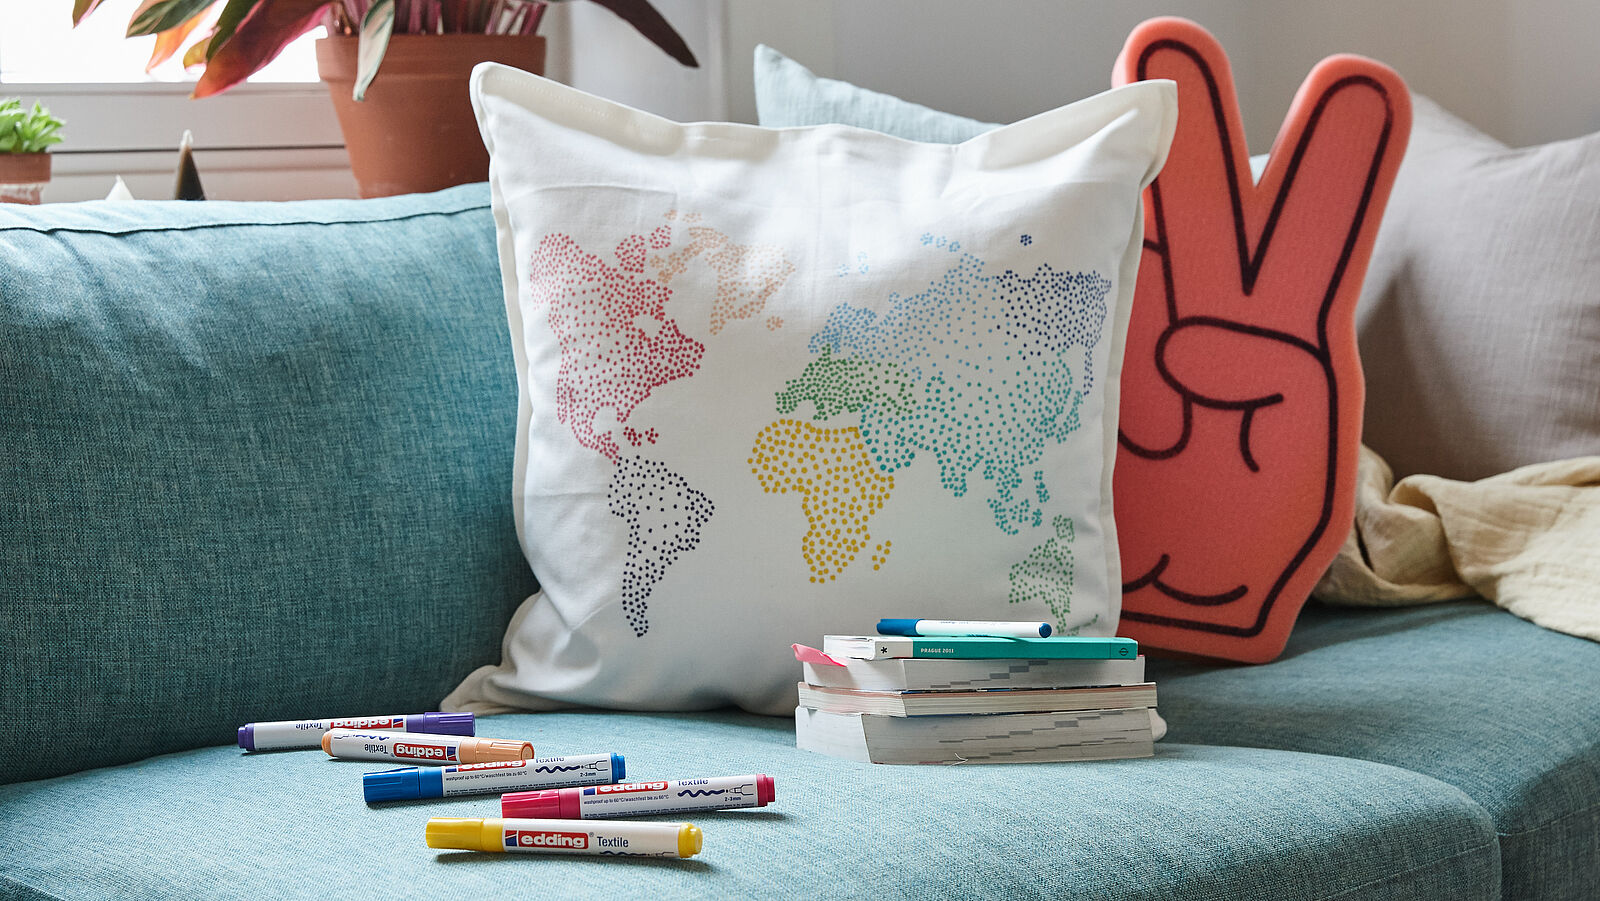 DIY world map cushion made with edding textile markers and pens